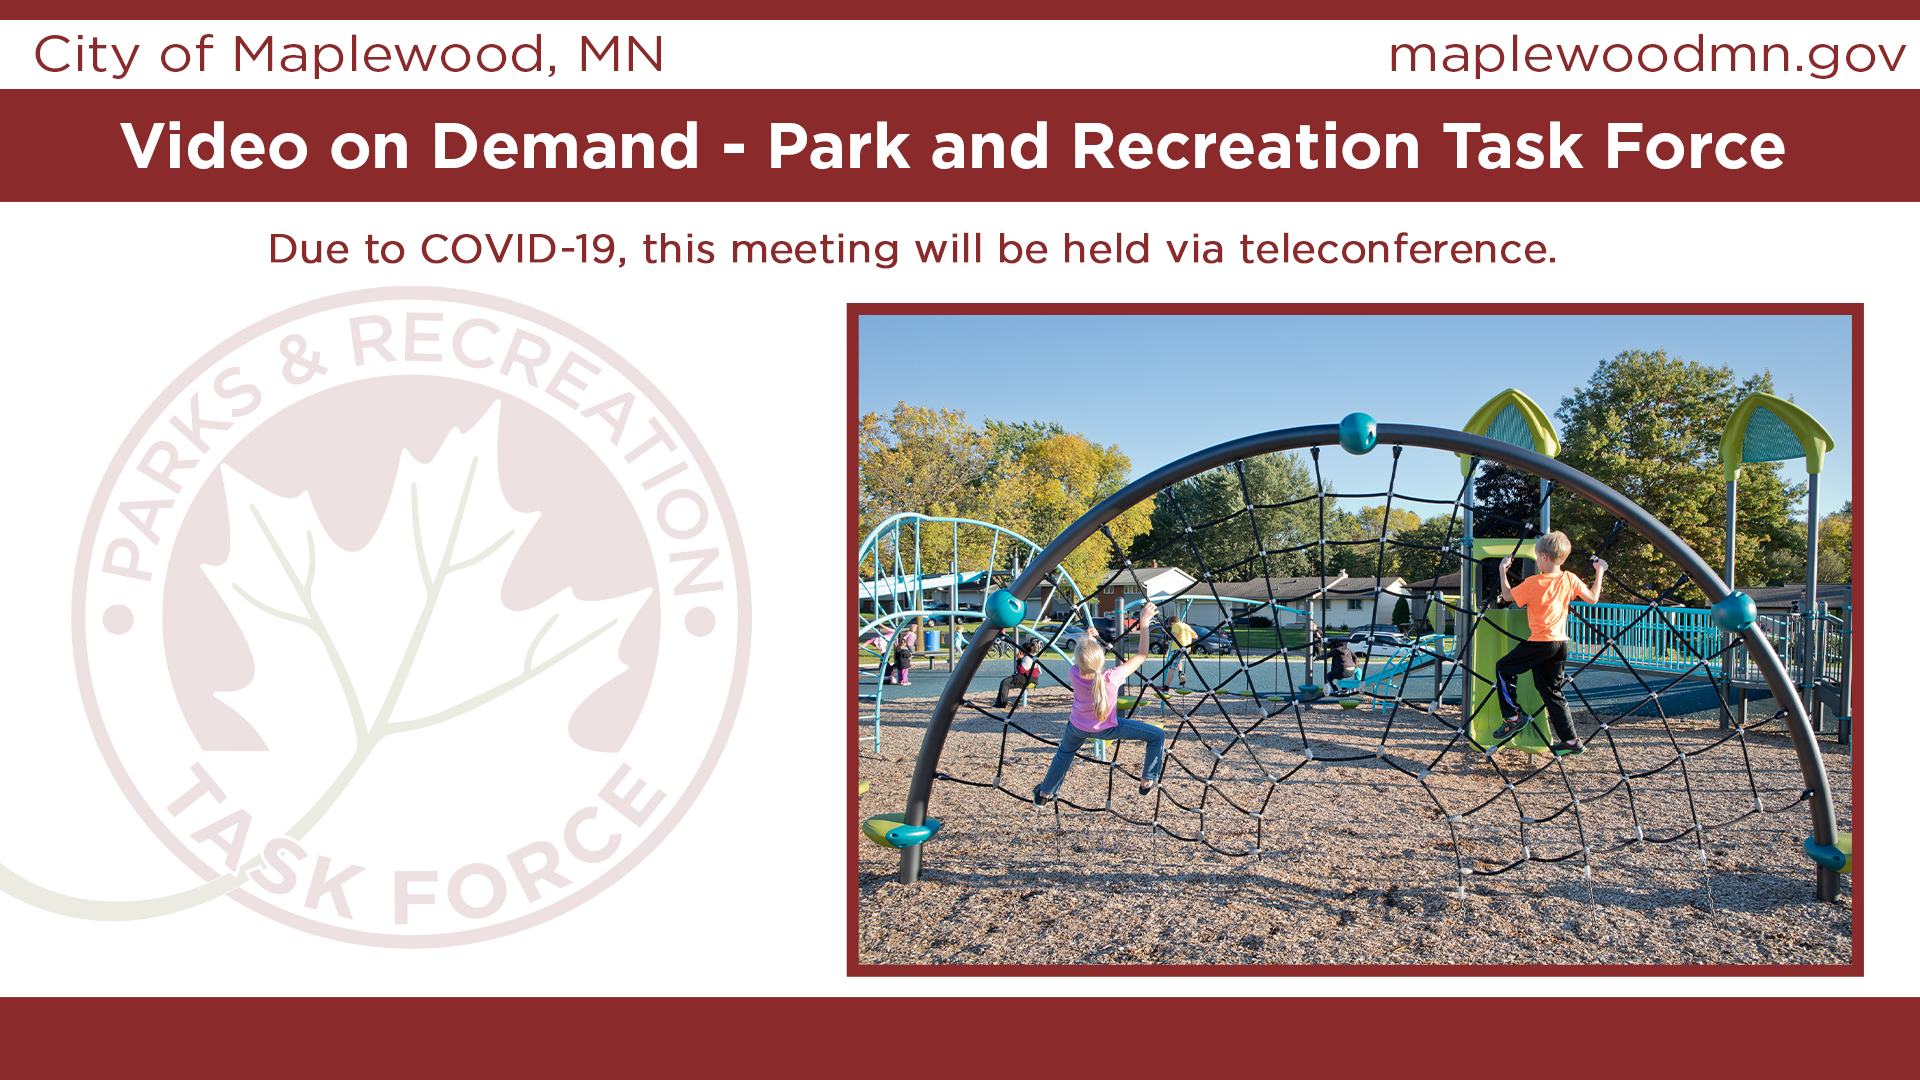 Park and Recreation Task Force